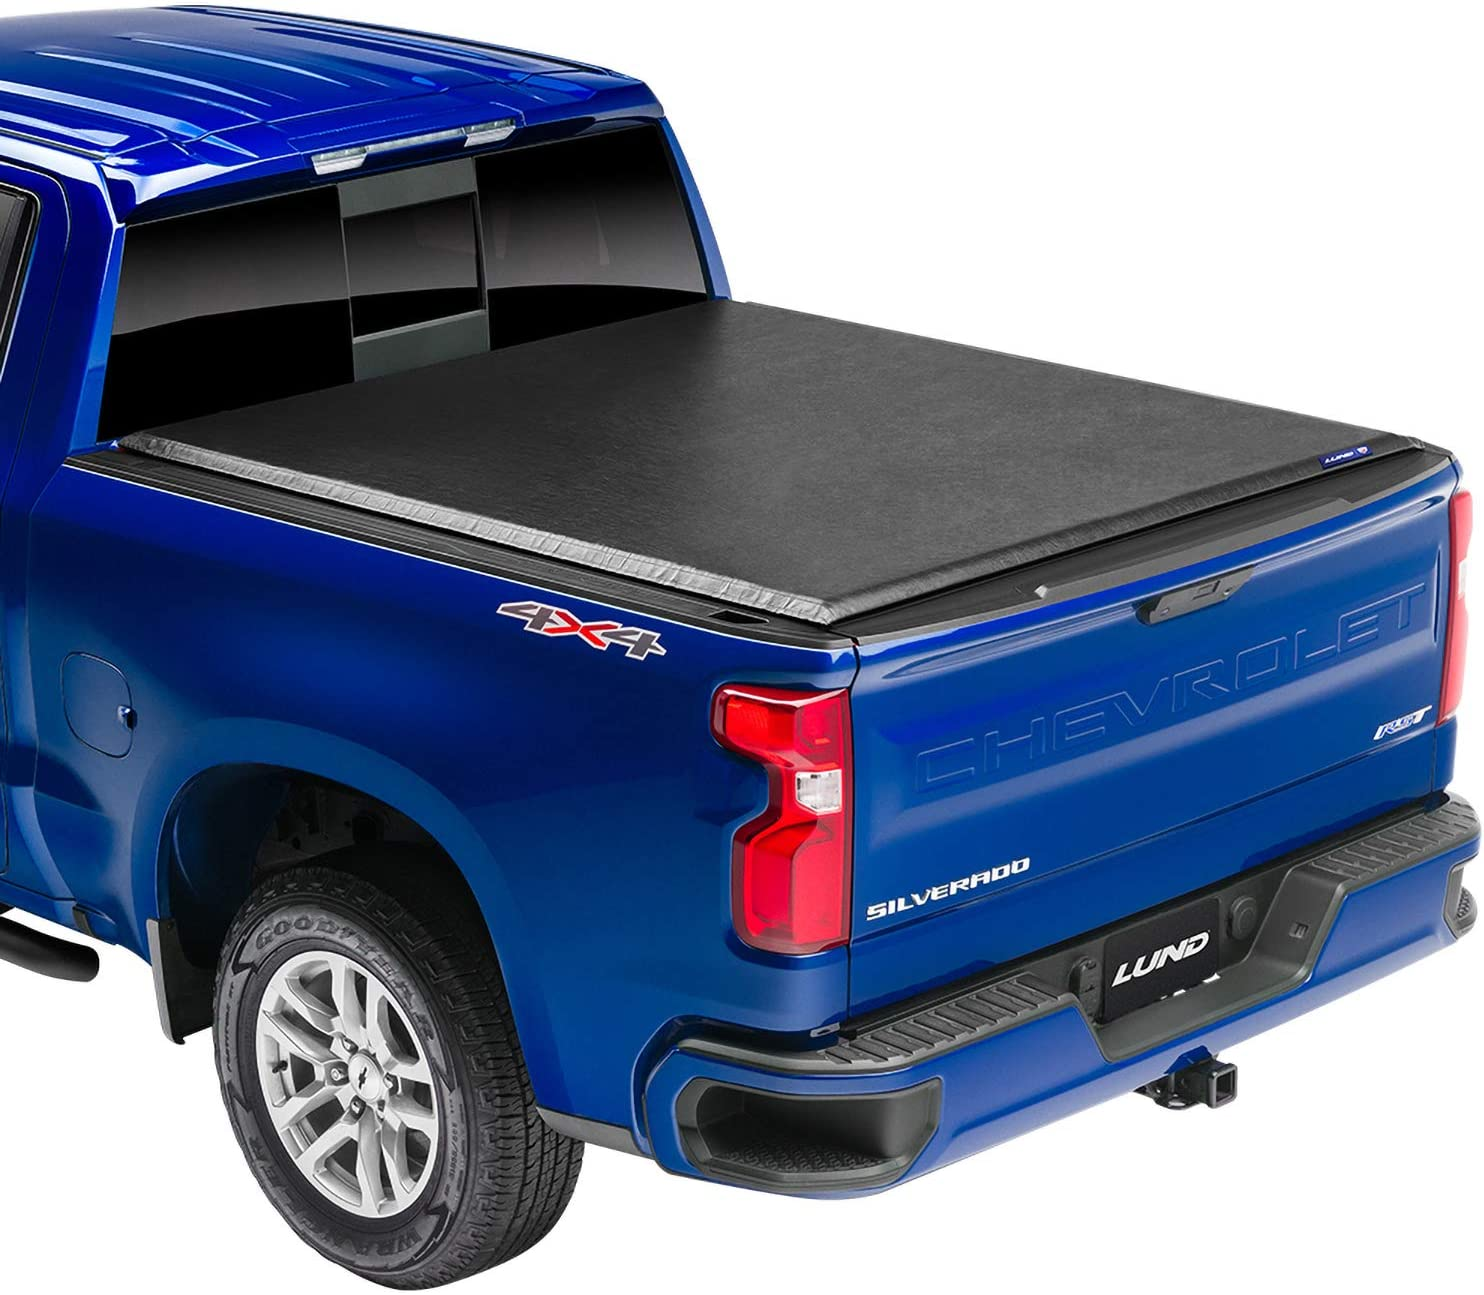 "Lund Genesis Elite Roll Up, Soft Roll Up Truck Bed Tonneau Cover | 96893 | Fits 2014 - 2018 GMC Sierra & Chevrolet Silverado 6' 6"" Bed"